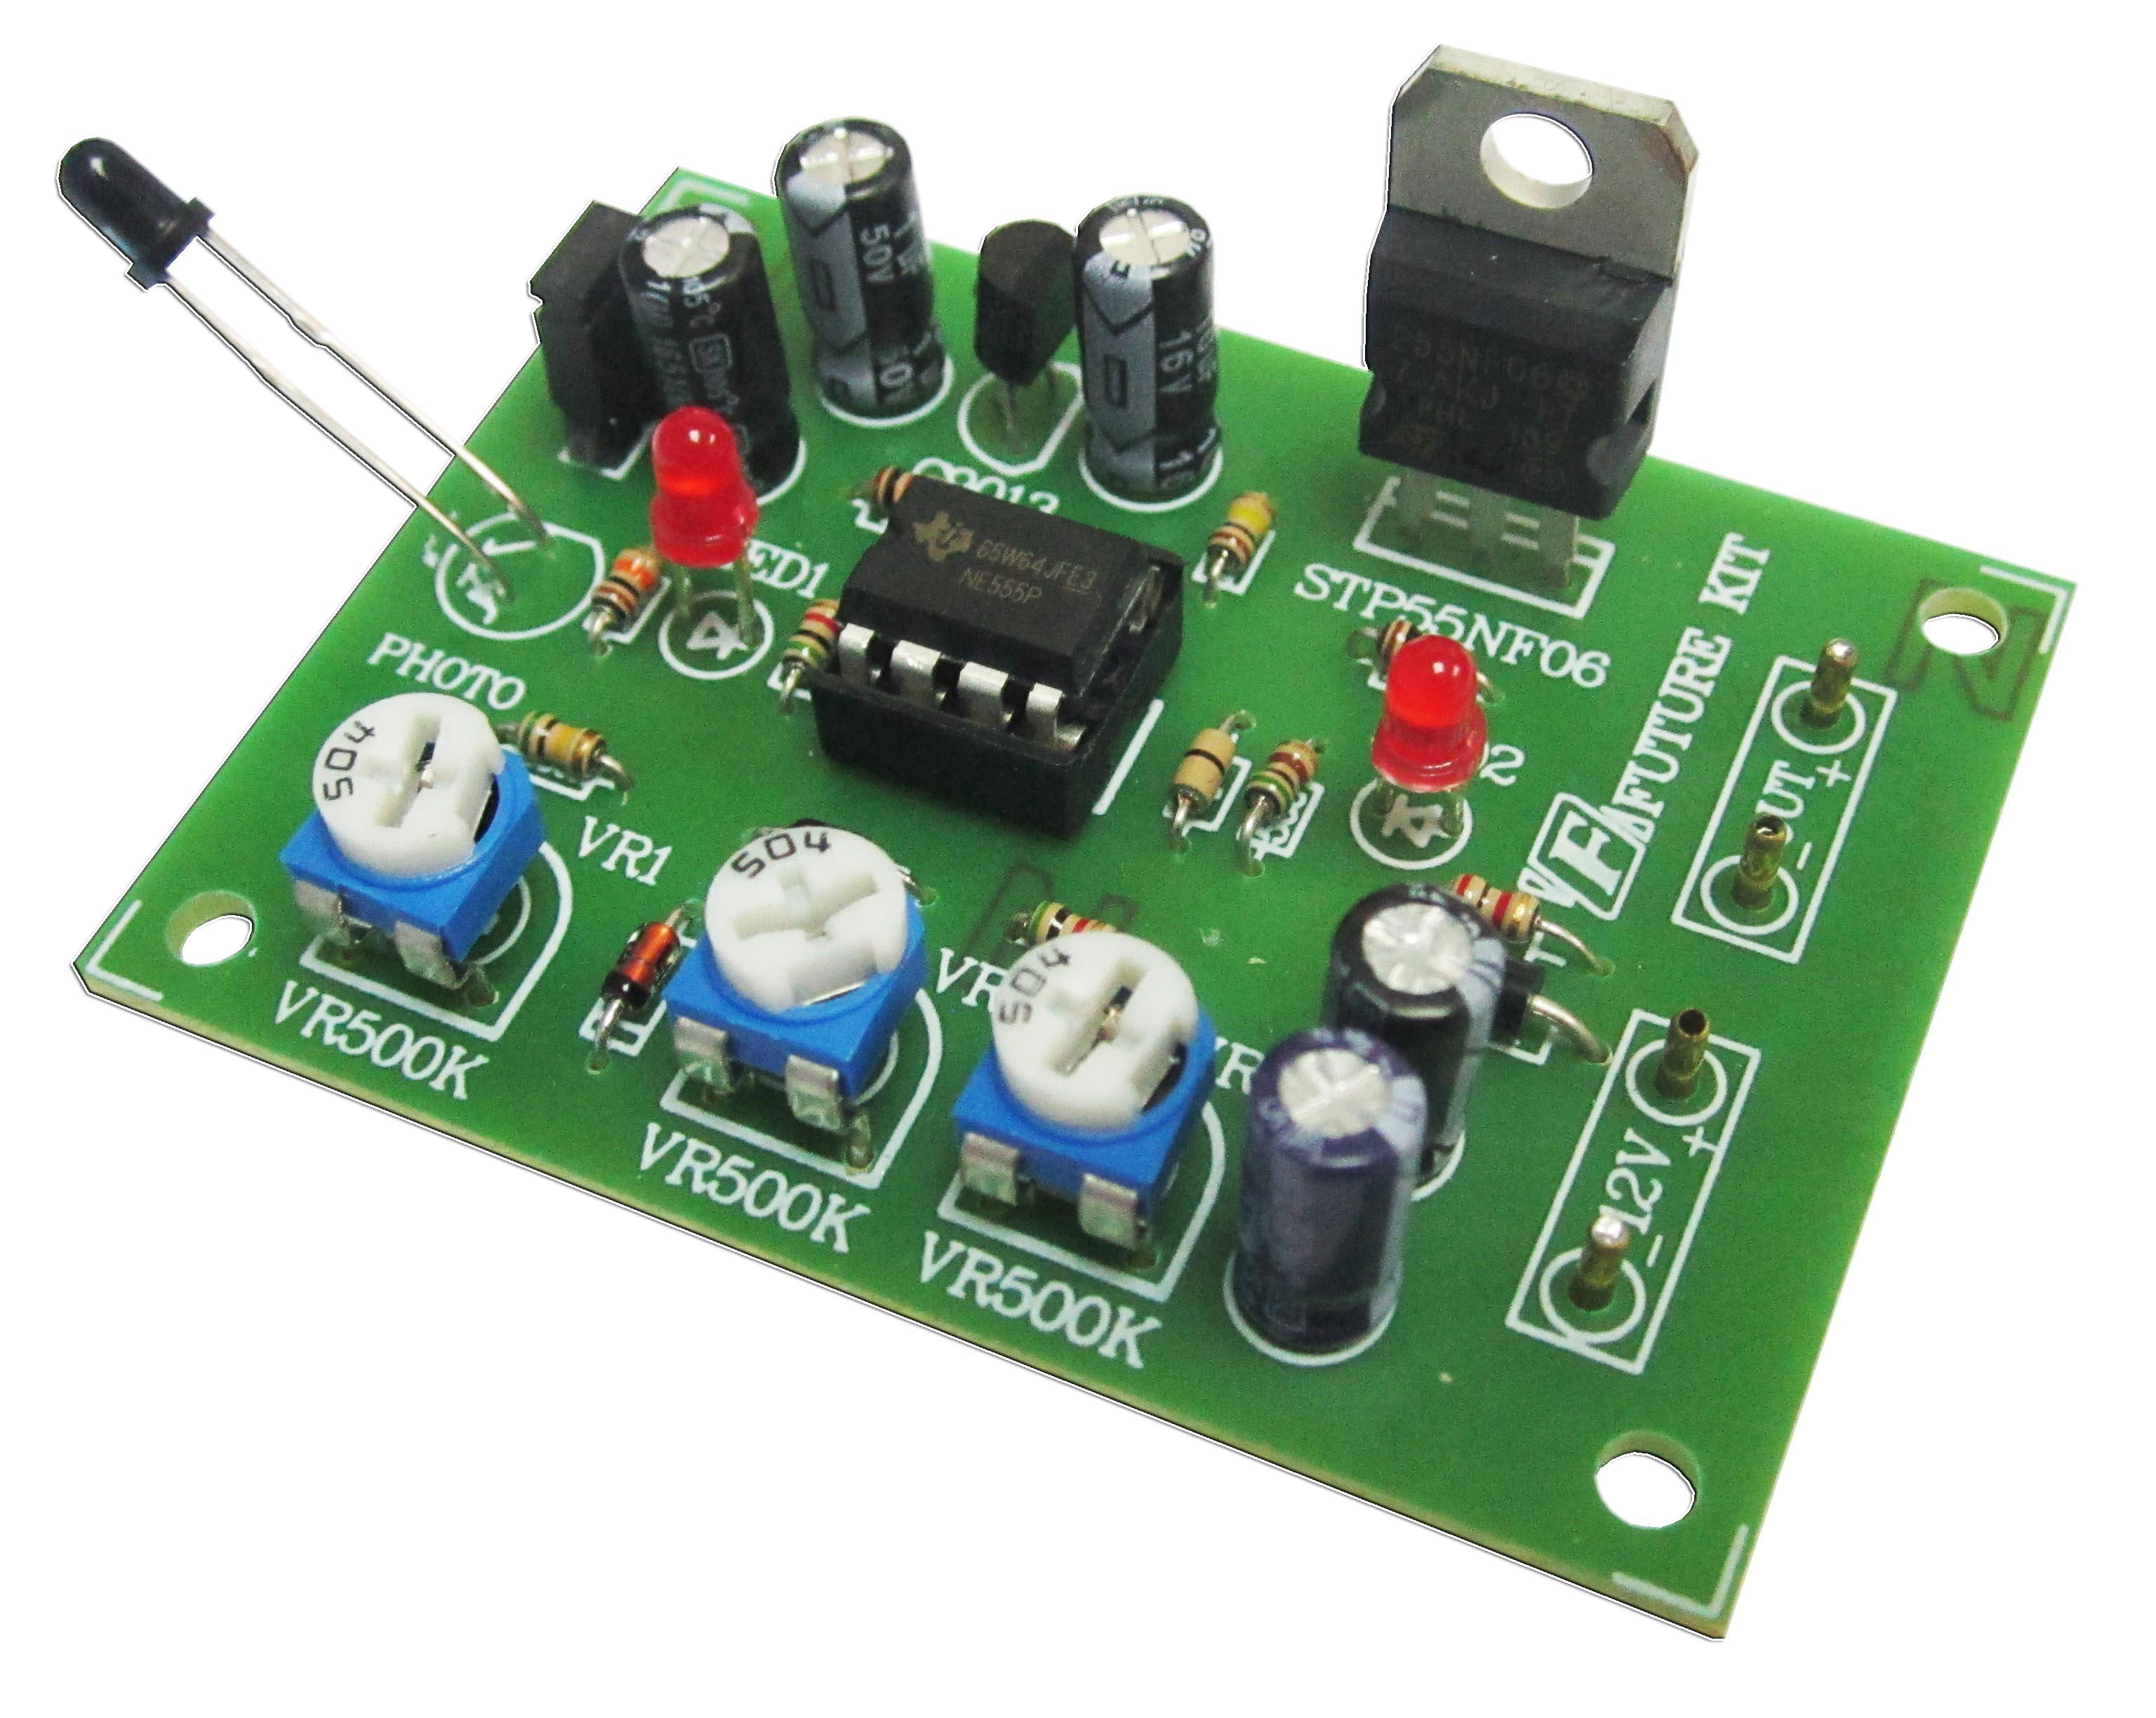 Buy Led Flasher High Power 12v 35w At The Right Price Electrokit Flashers Circuits And Projects 24 Home